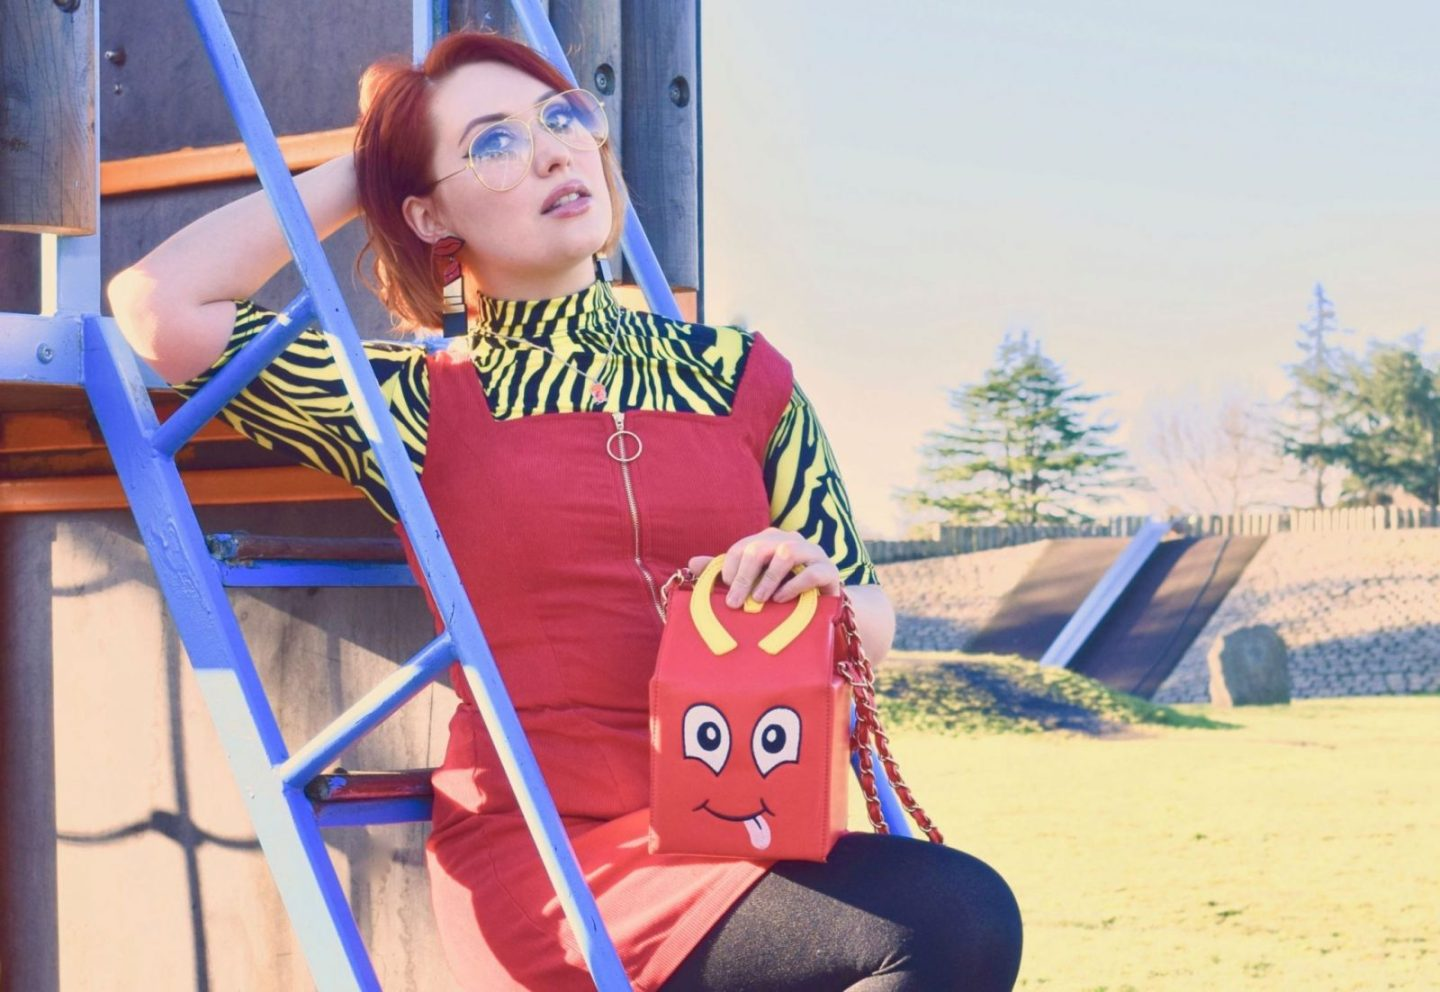 Let's talk about novelty fashion: why kitsch is cool